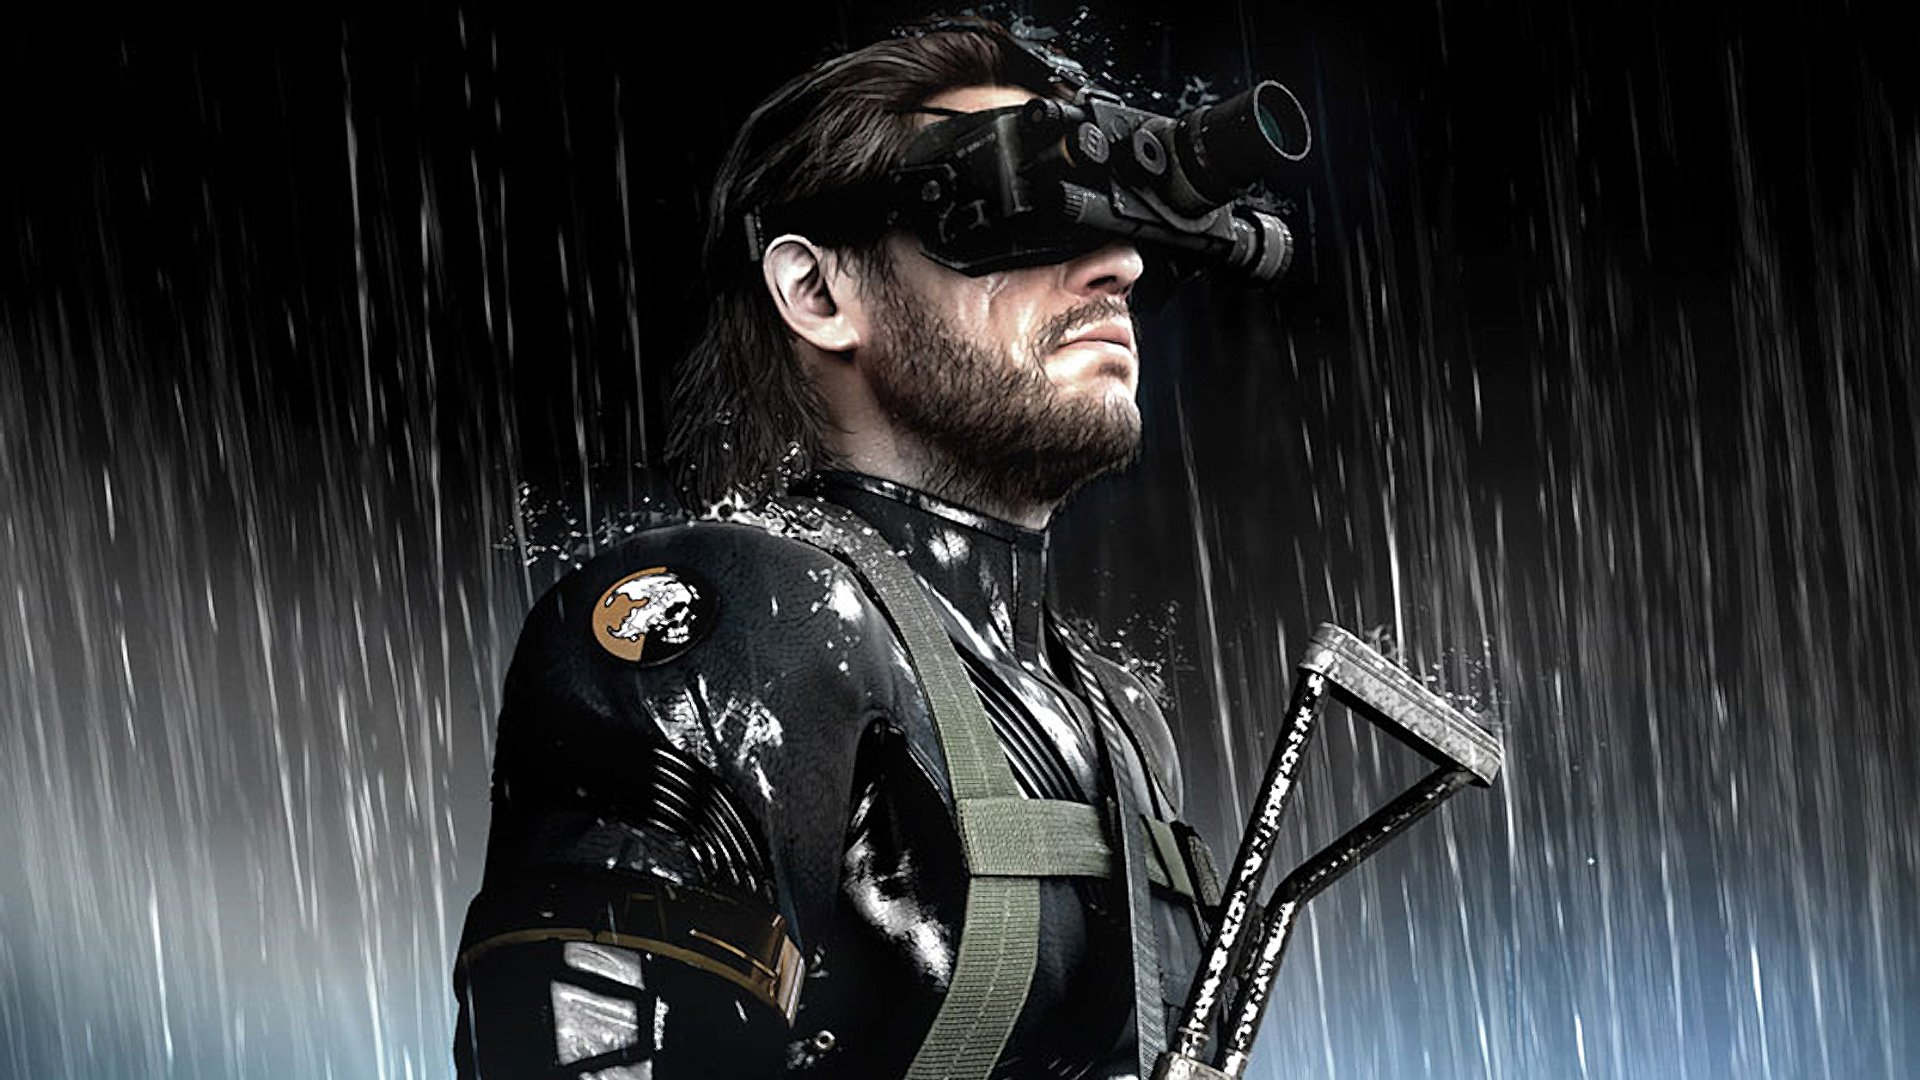 Metal Gear Solid V Wallpaper: Metal Gear Solid V: Ground Zeroes Full HD Wallpaper And